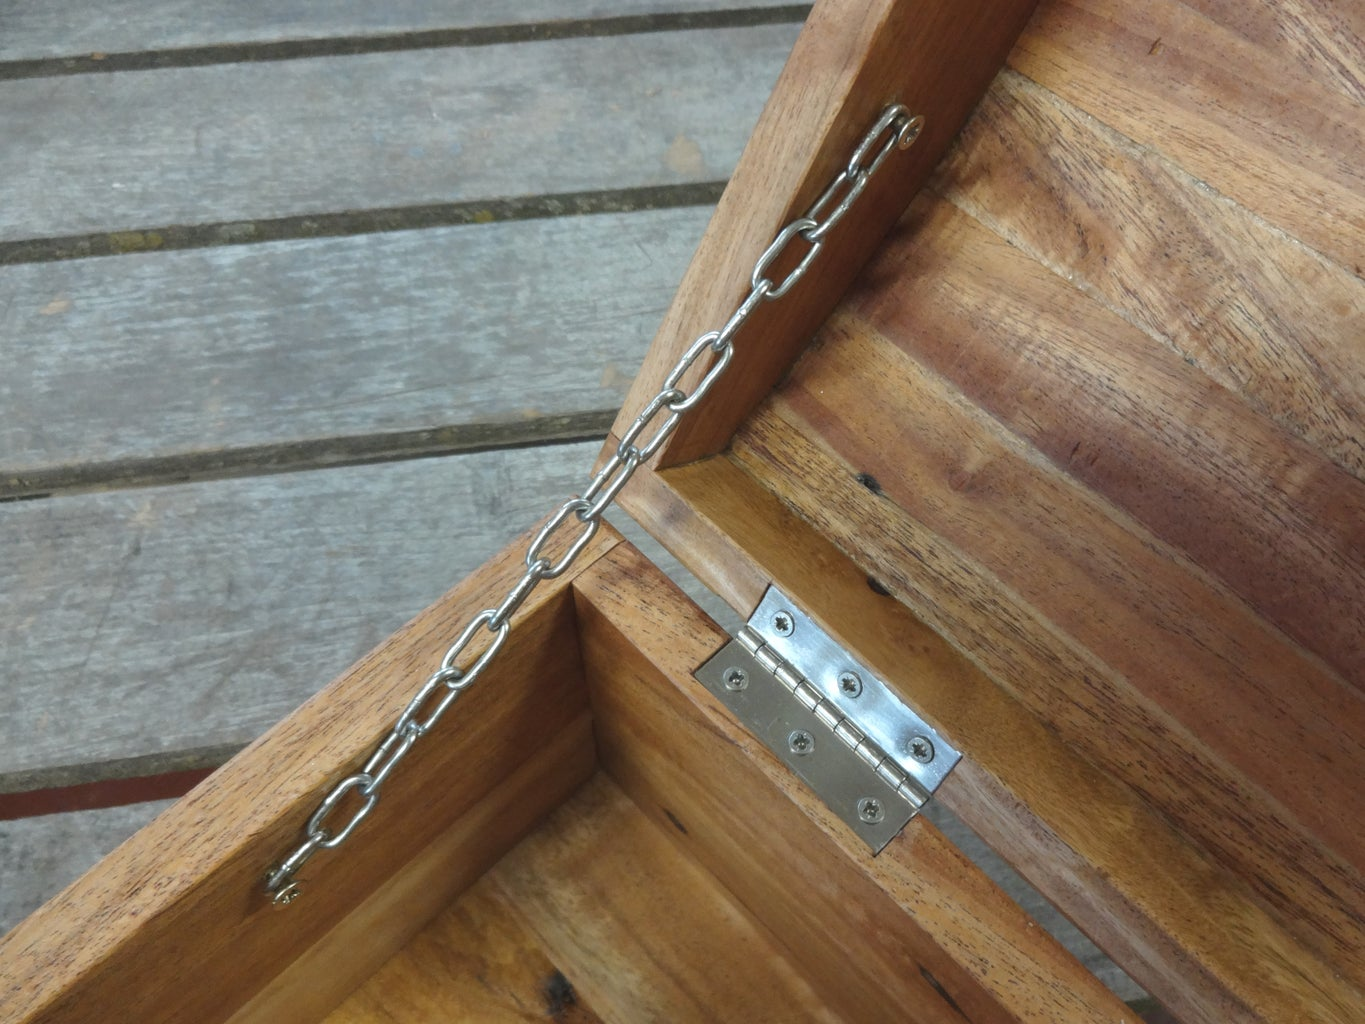 Installing Hinges, Clasp and Chain